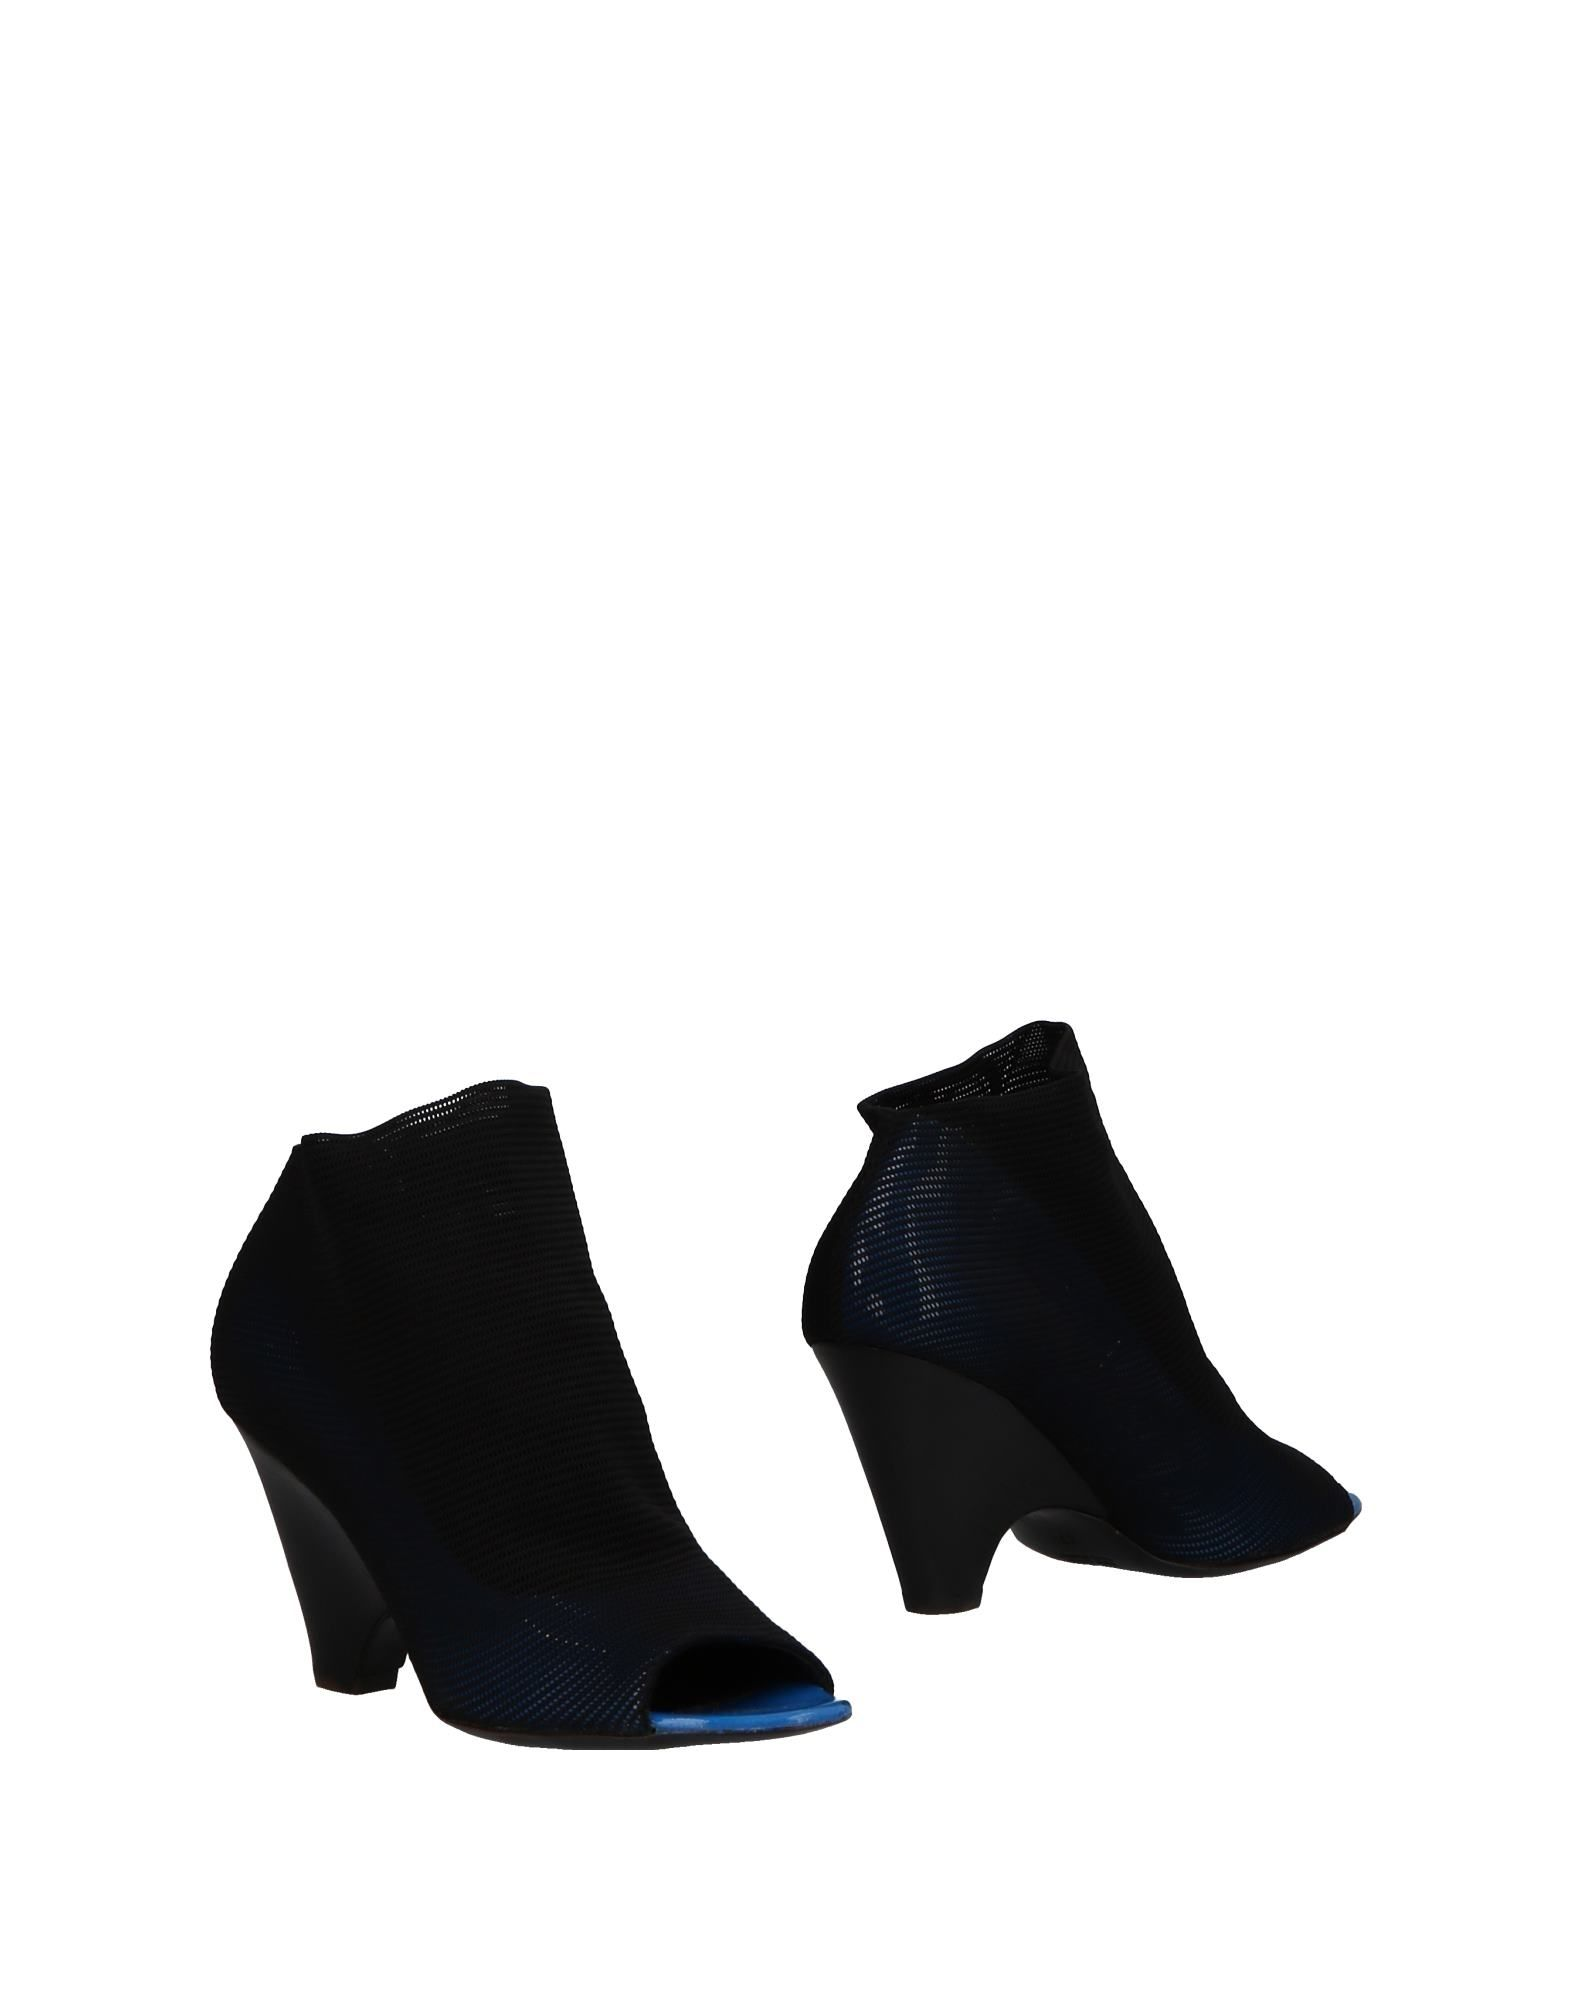 Jfk Ankle Boot Boots - Women Jfk Ankle Boots Boot online on  Australia - 11503265KG 0419ab